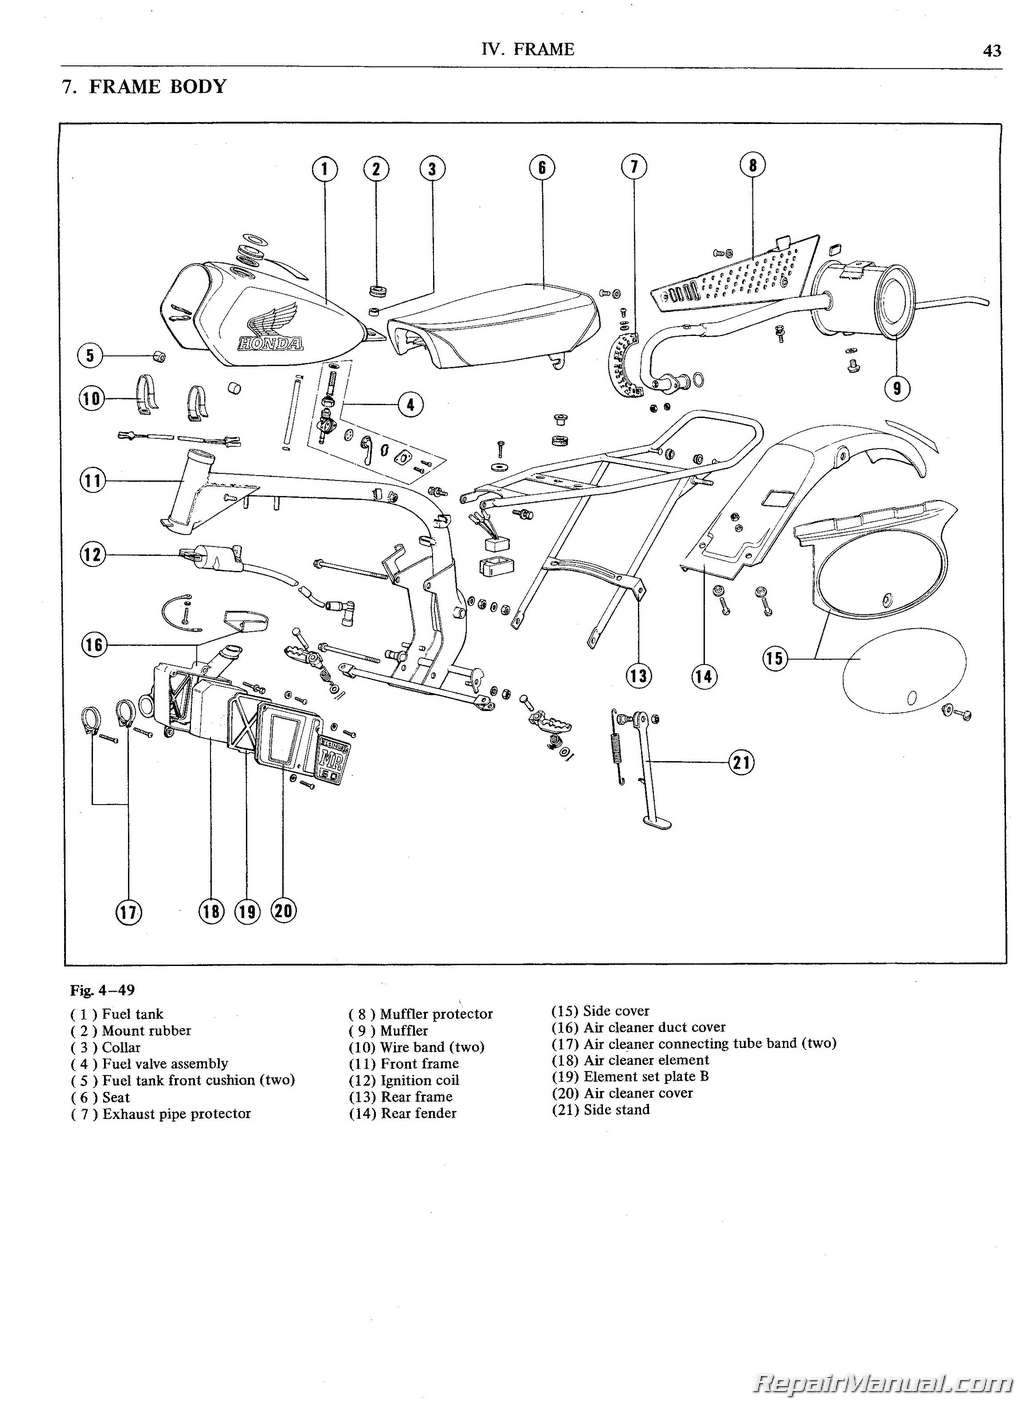 Honda Mr50 Motorcycle Service Manual  U0026 Parts Manual 1974